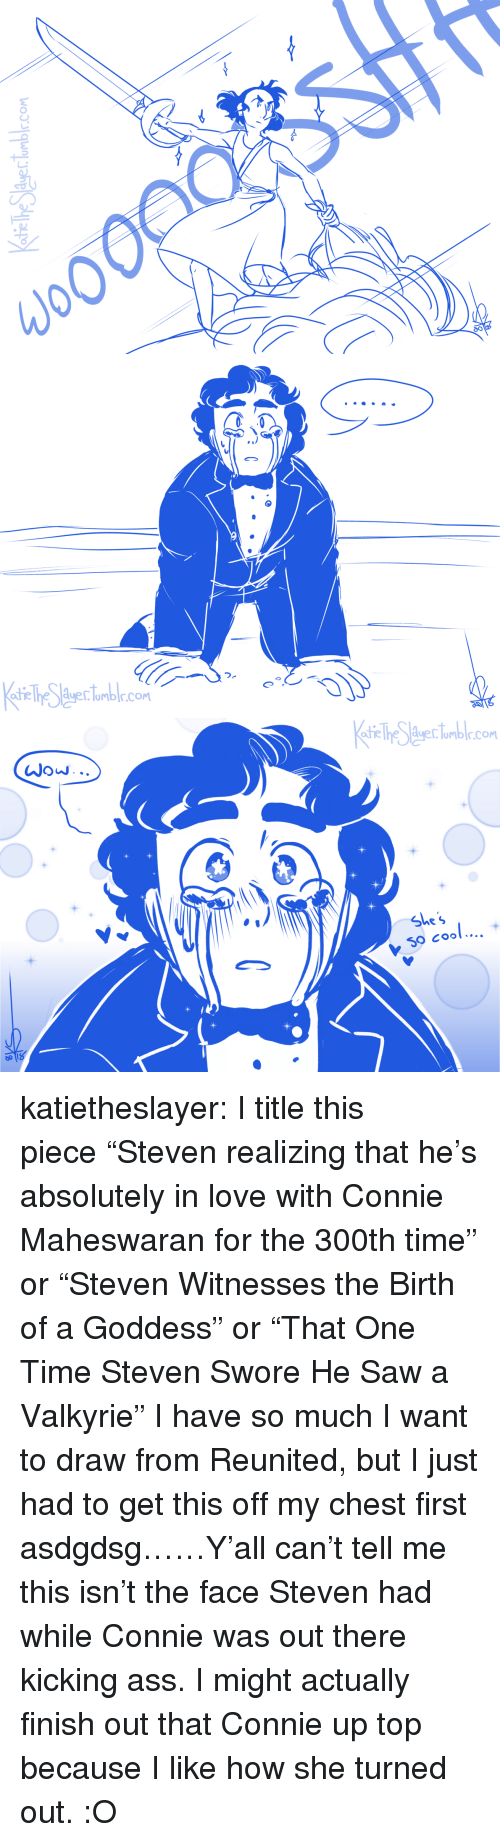 """Kicking Ass: the The duerlomblr.com   atie he duerlumblr.com   te lhe Auerlumbr.com  JOJ. ..  She  S0 Cool.... katietheslayer: I title this piece""""Steven realizing that he's absolutely in love with Connie Maheswaran for the 300th time"""" or""""Steven Witnesses the Birth of a Goddess"""" or""""That One Time Steven Swore He Saw a Valkyrie"""" I have so much I want to draw from Reunited, but I just had to get this off my chest first asdgdsg……Y'all can't tell me this isn't the face Steven had while Connie was out there kicking ass. I might actually finish out that Connie up top because I like how she turned out. :O"""